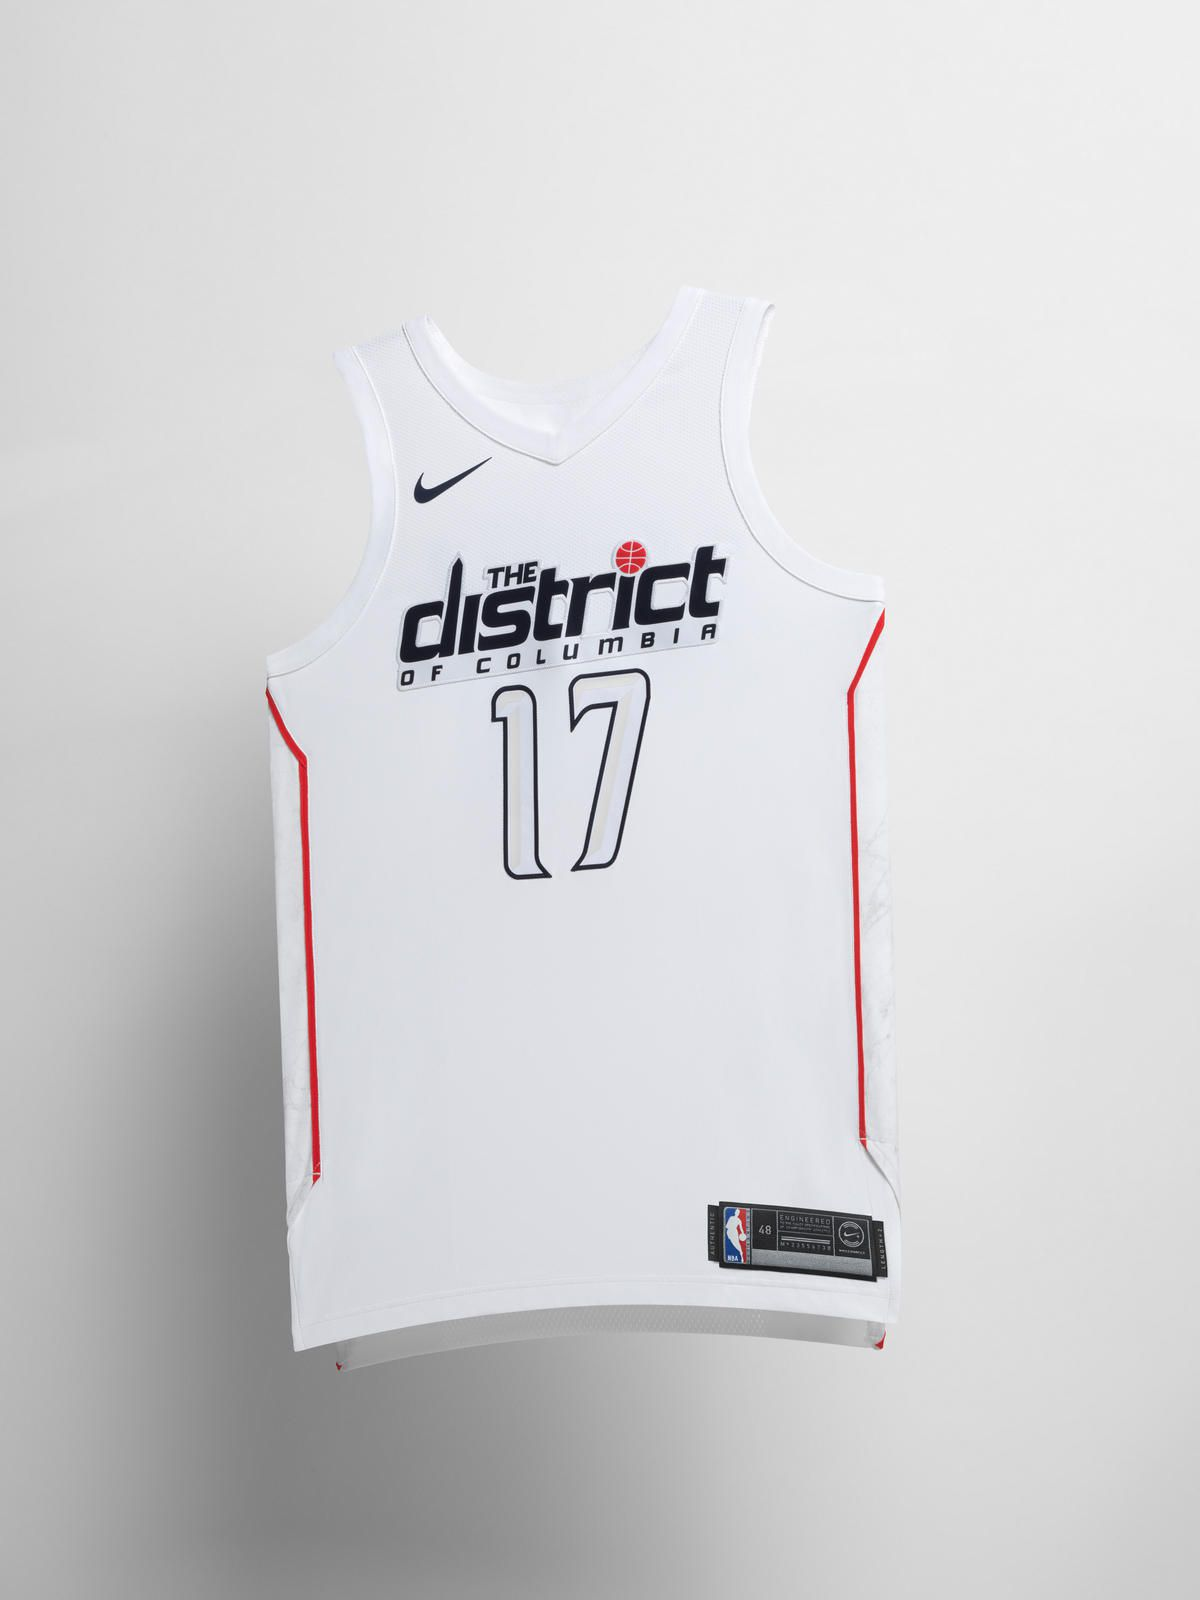 official photos 76452 2e1d1 Here is the Wizards 'The District' City Edition uniform ...